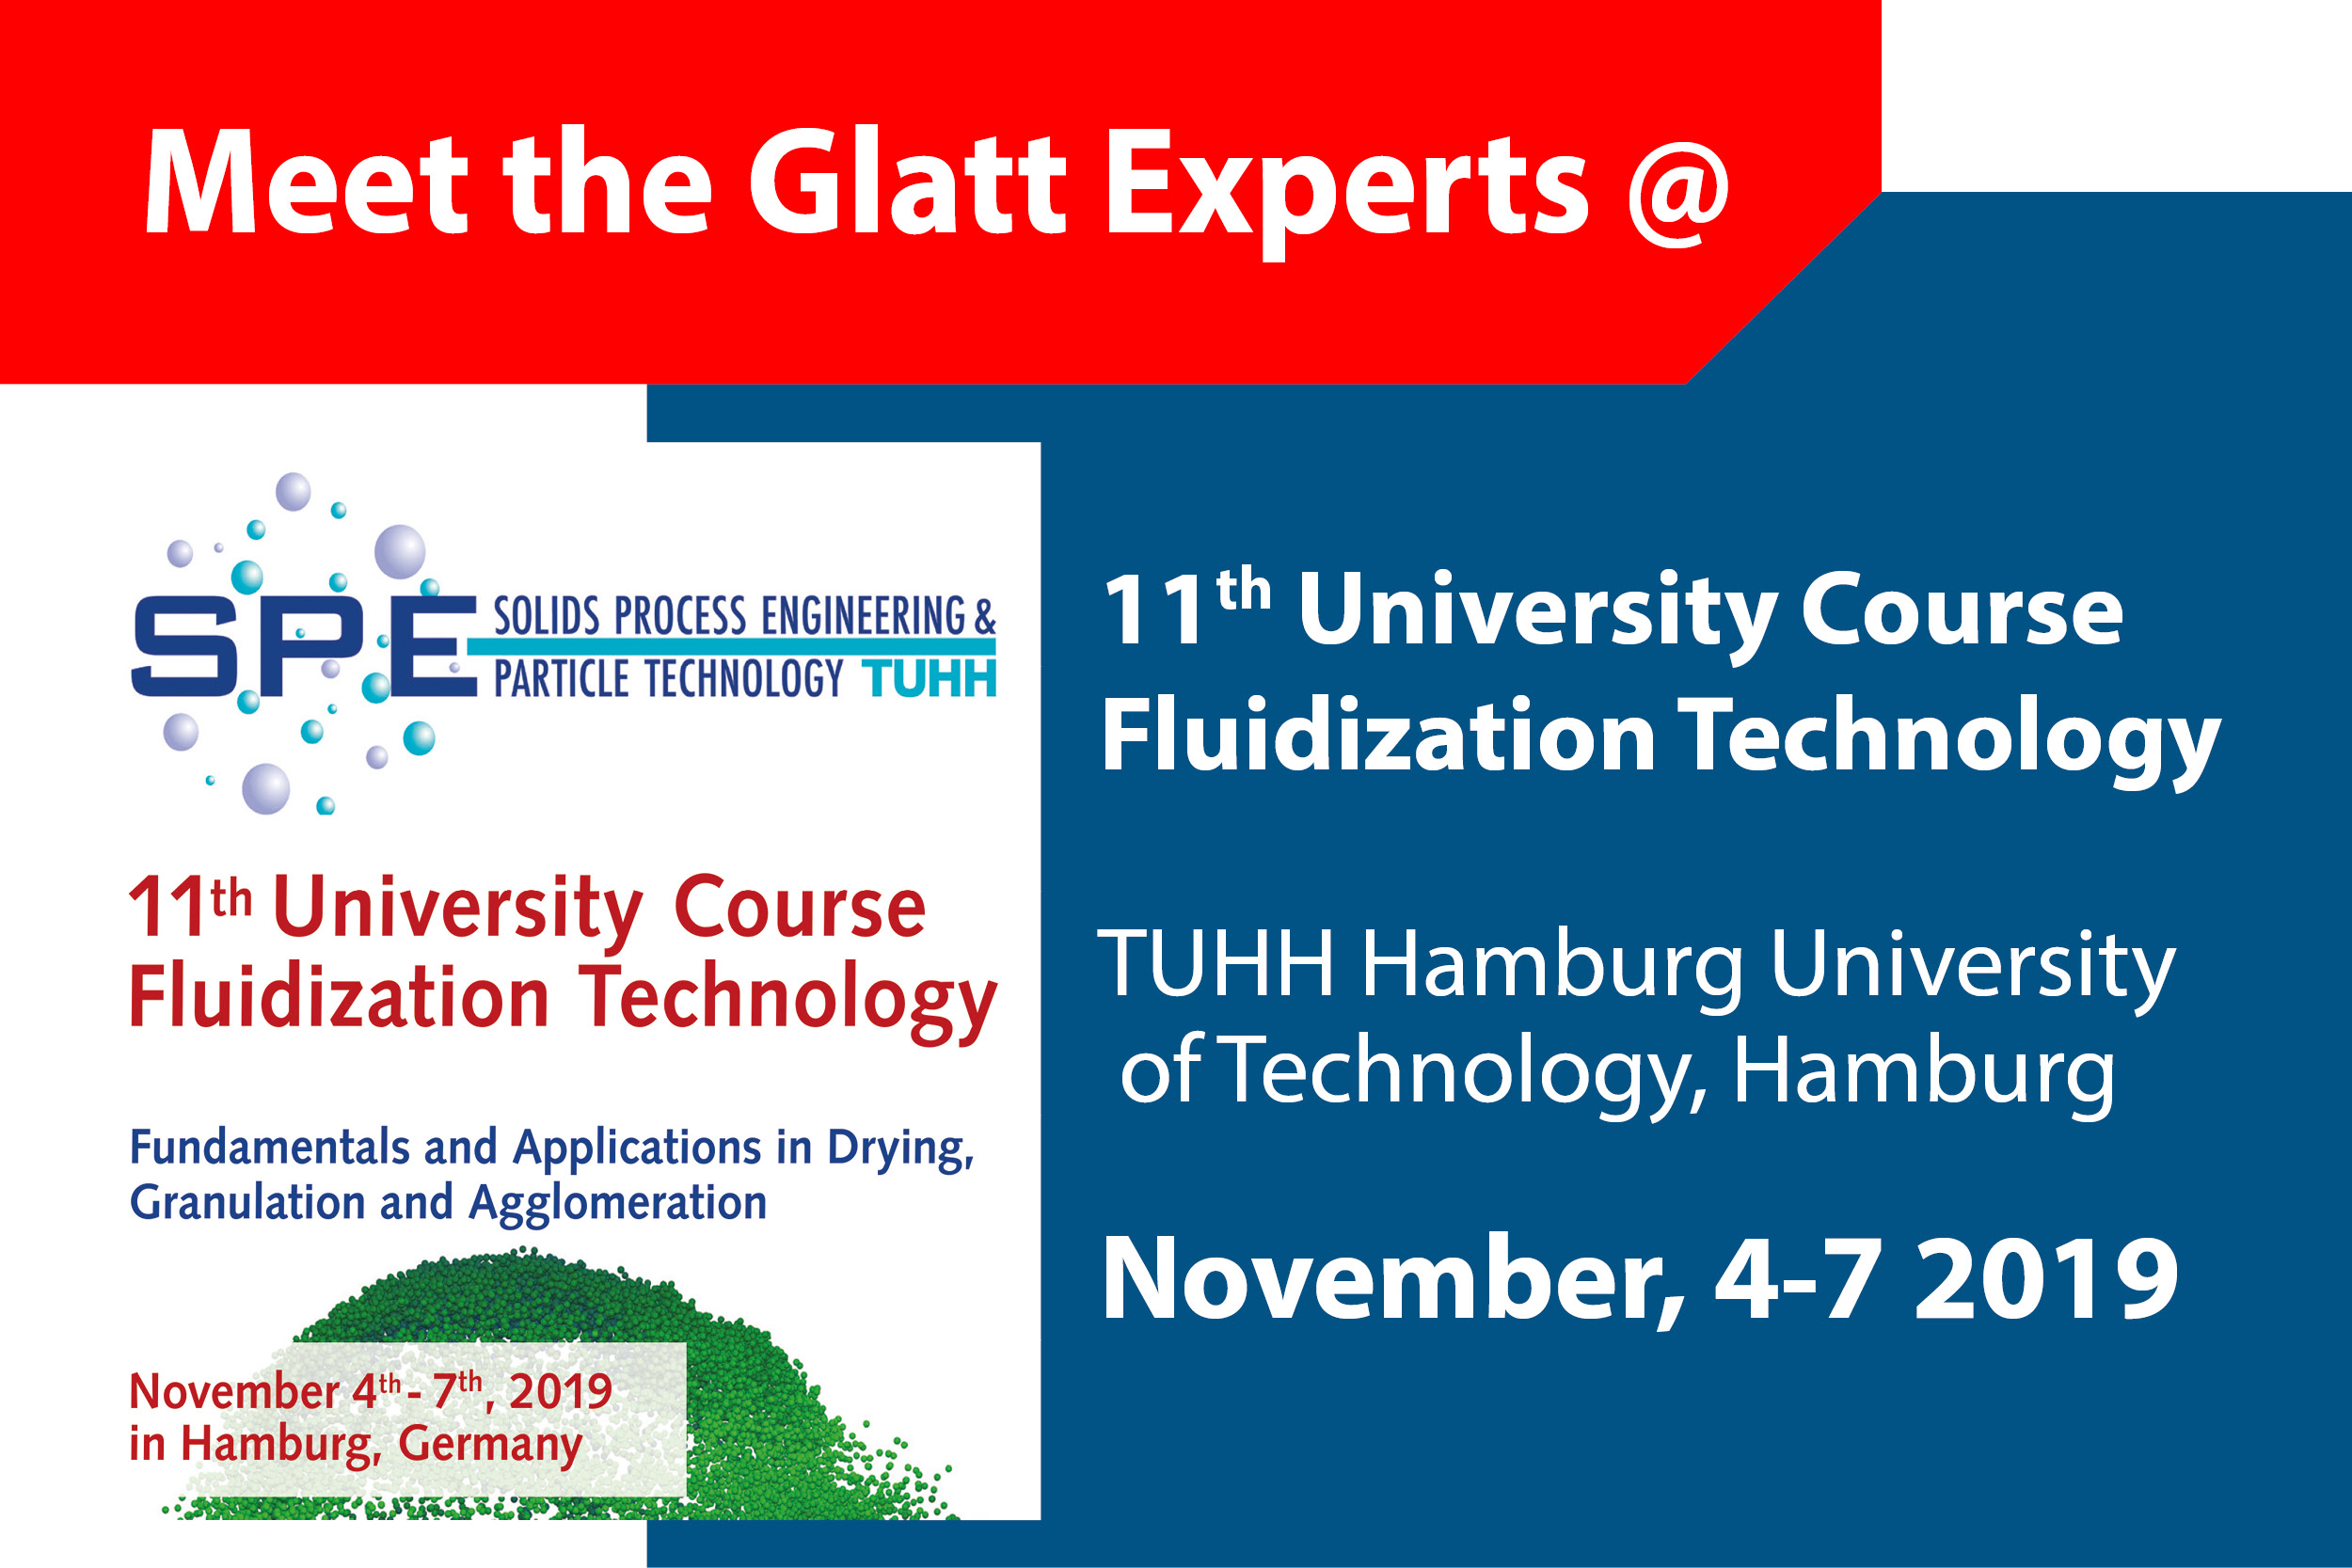 Meet the Glatt Experts @ 11th University Course Fluidization Technology in Hamburg